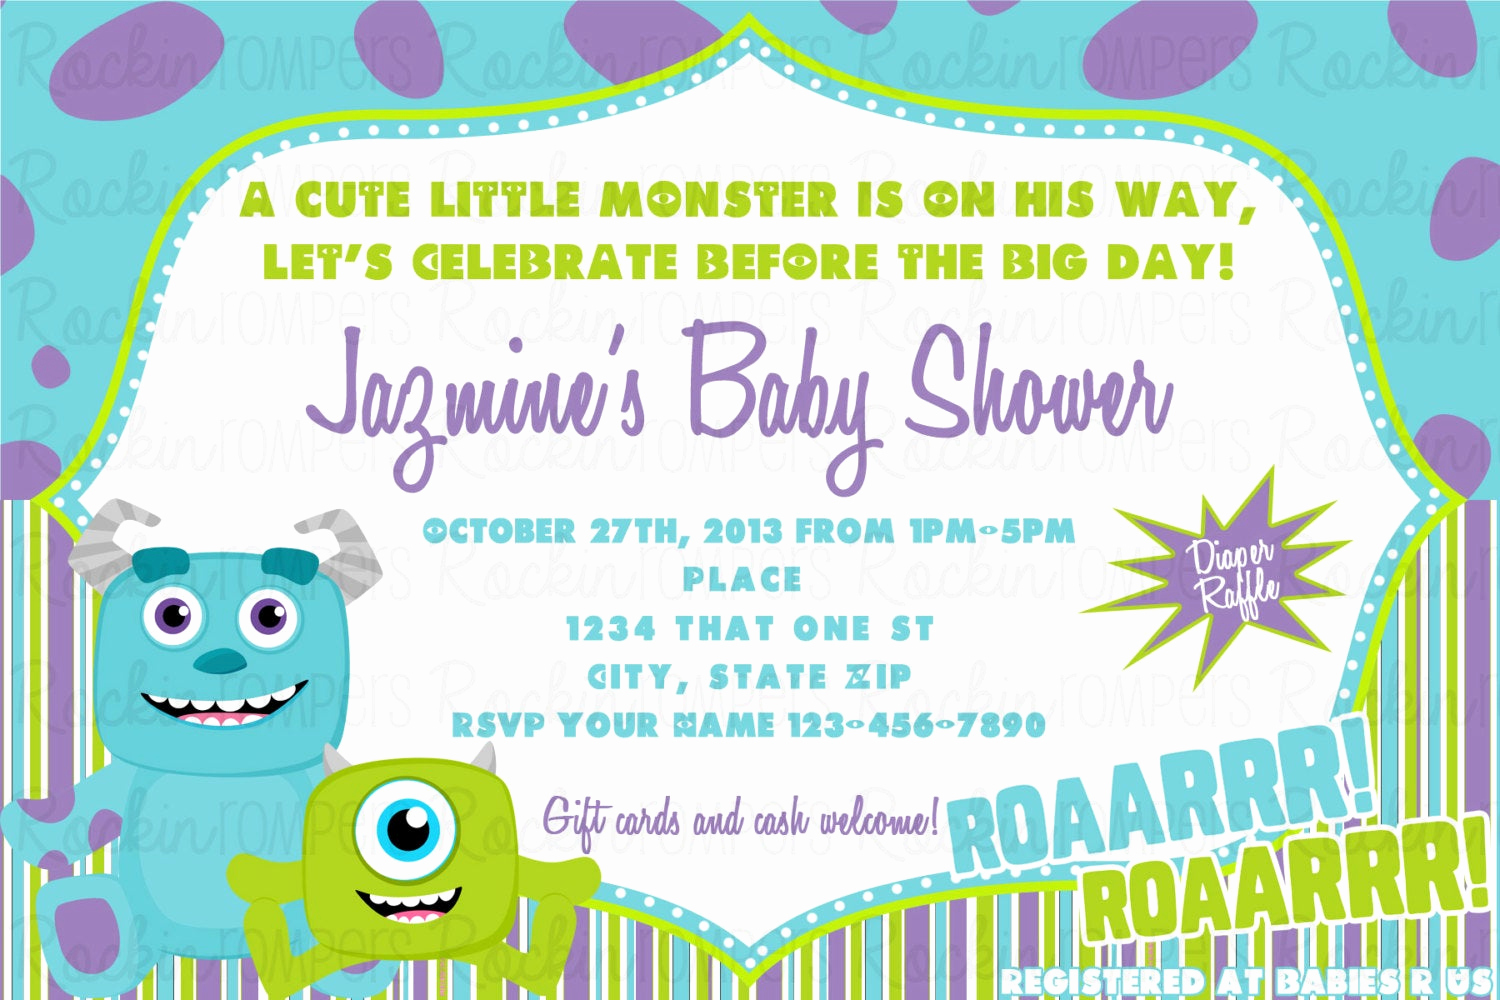 Monster Inc Invitation Template Inspirational Monsters Inc Baby Shower Invitation by Rockinrompers On Etsy